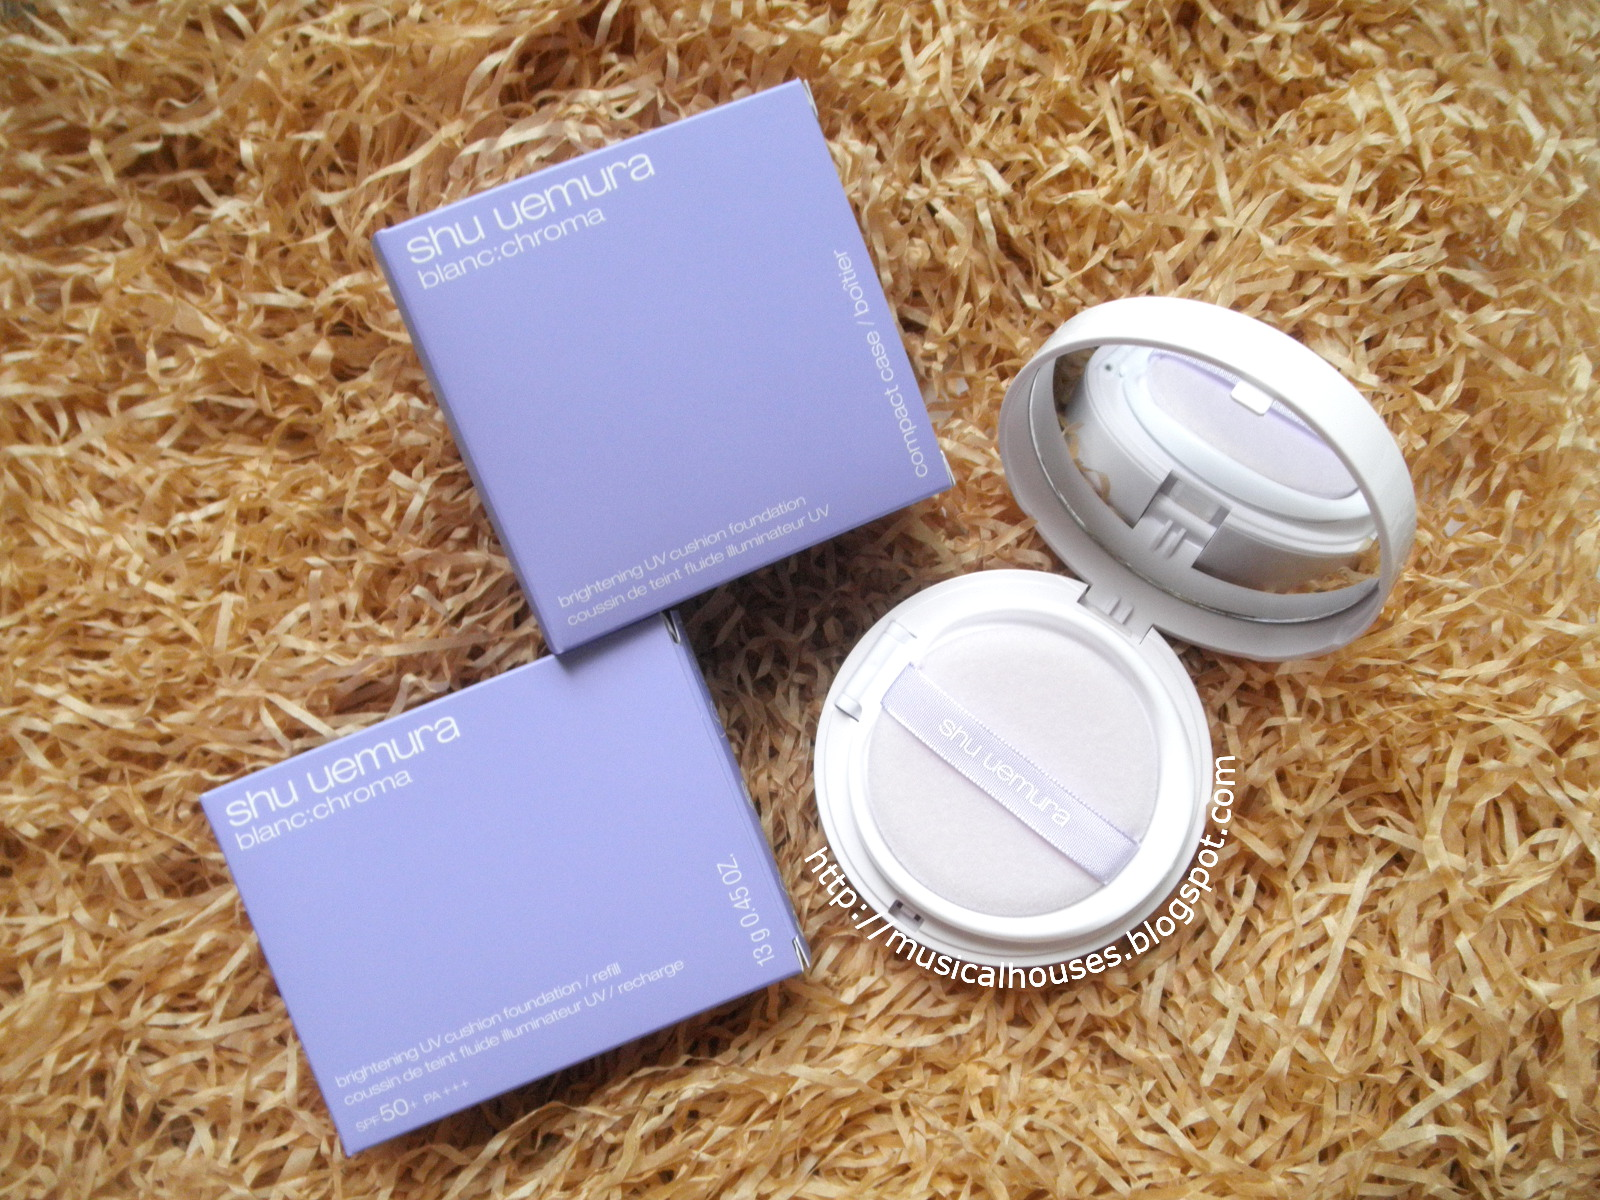 Shu Uemura Blanc Chroma Brightening UV Cushion Box